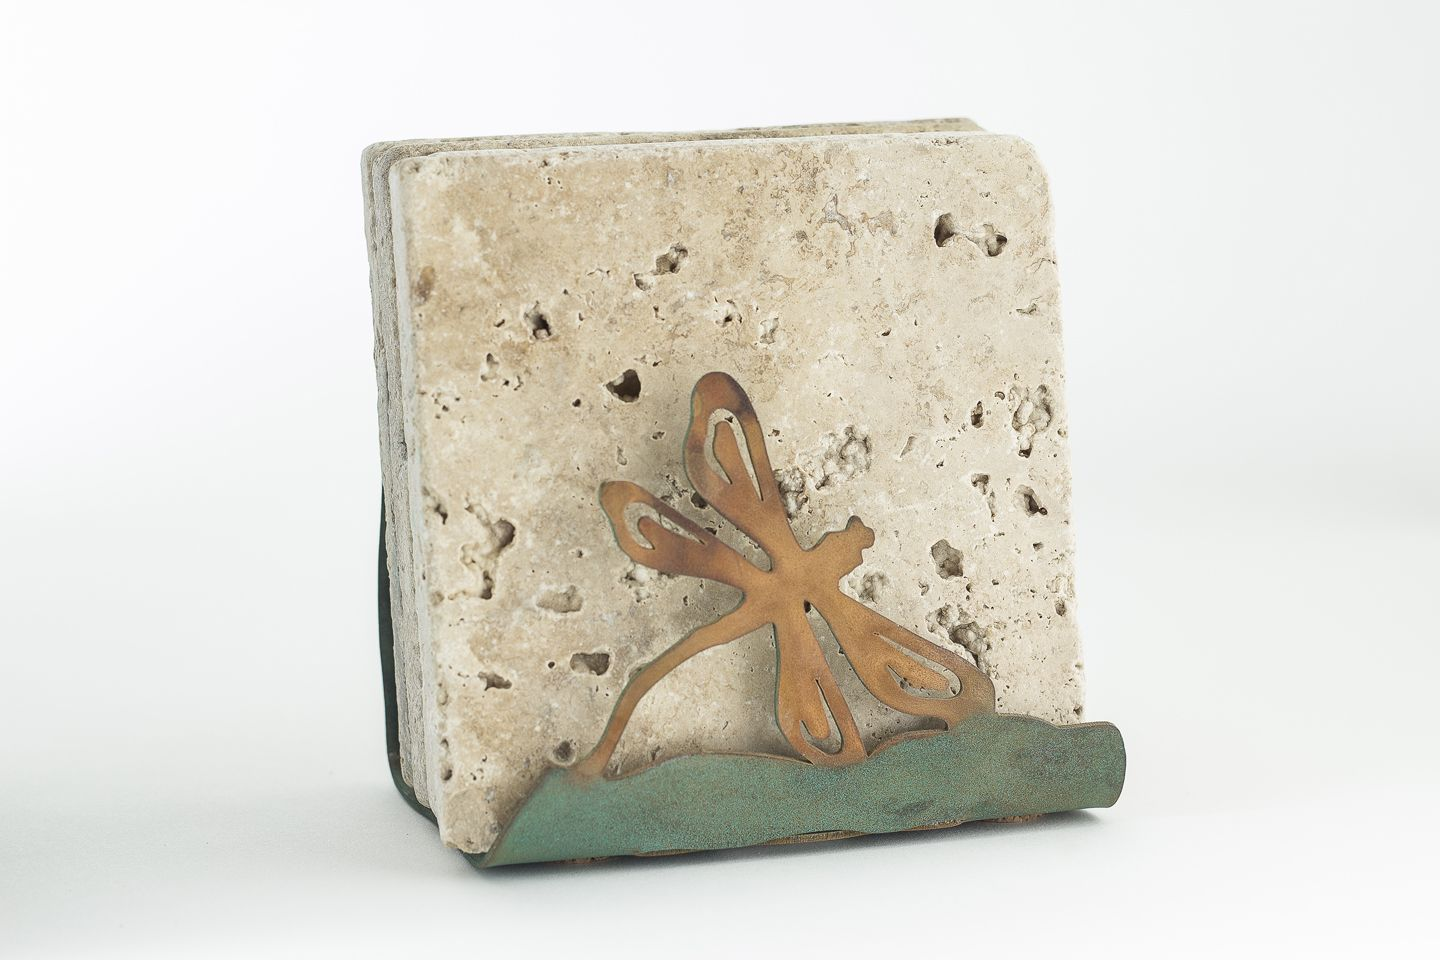 Gifts Made Of Stone : Classic coasters made of natural stone gift ideas